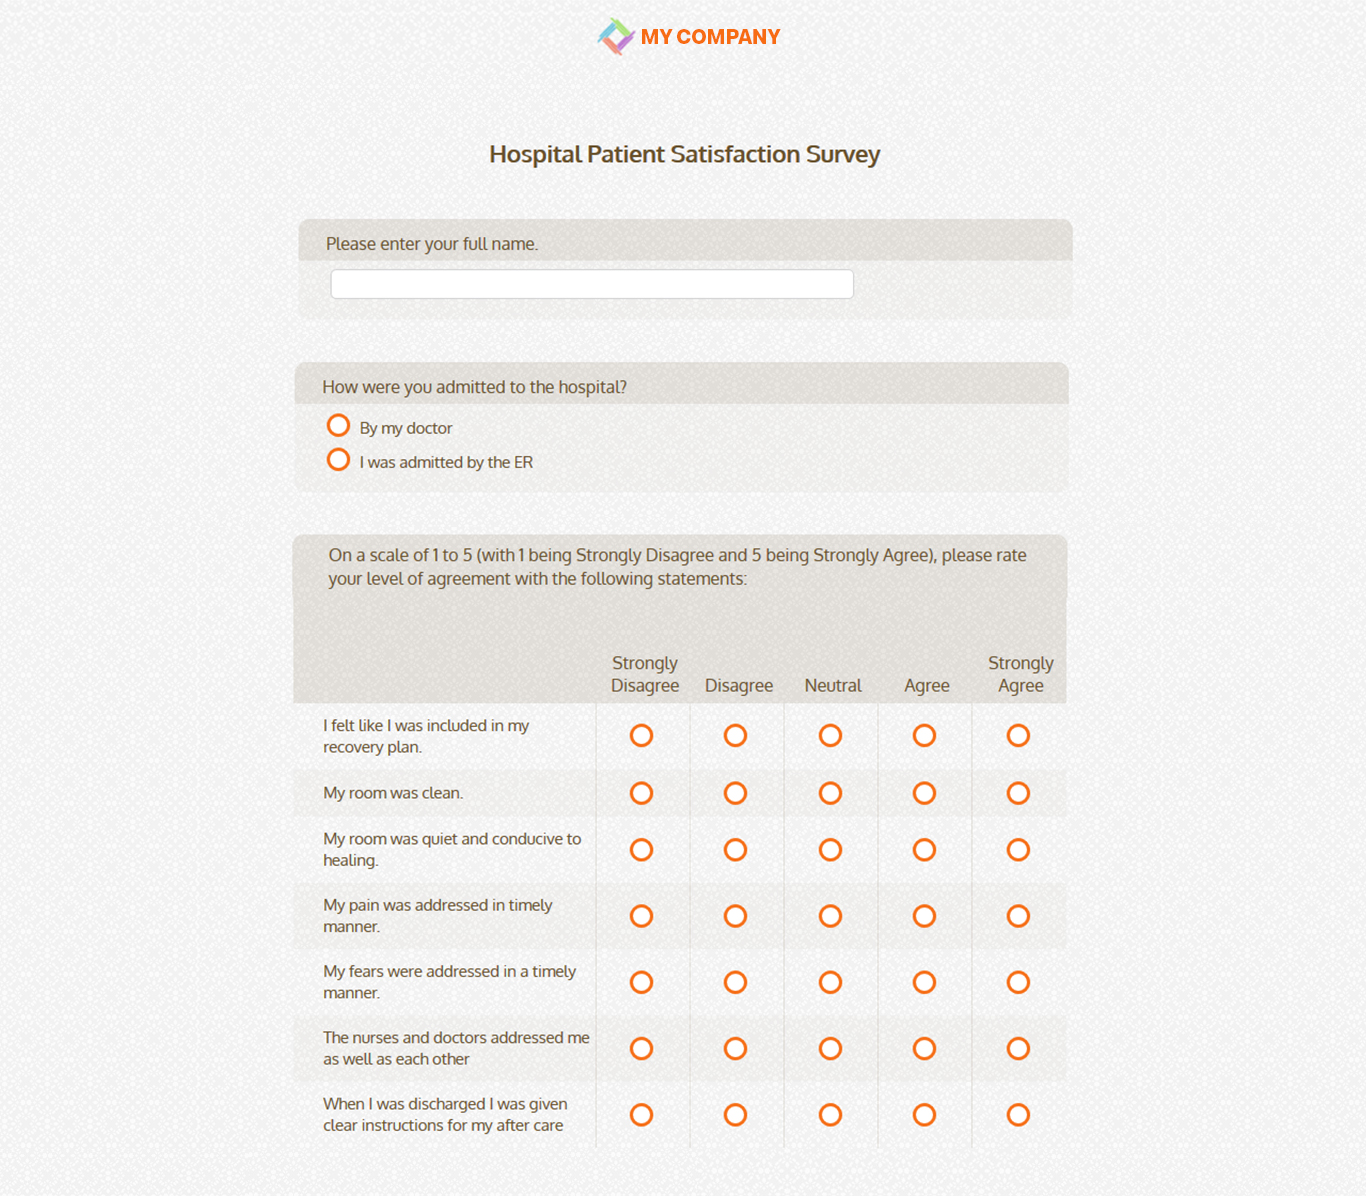 hospital patient satisfaction survey sogosurvey online survey tool